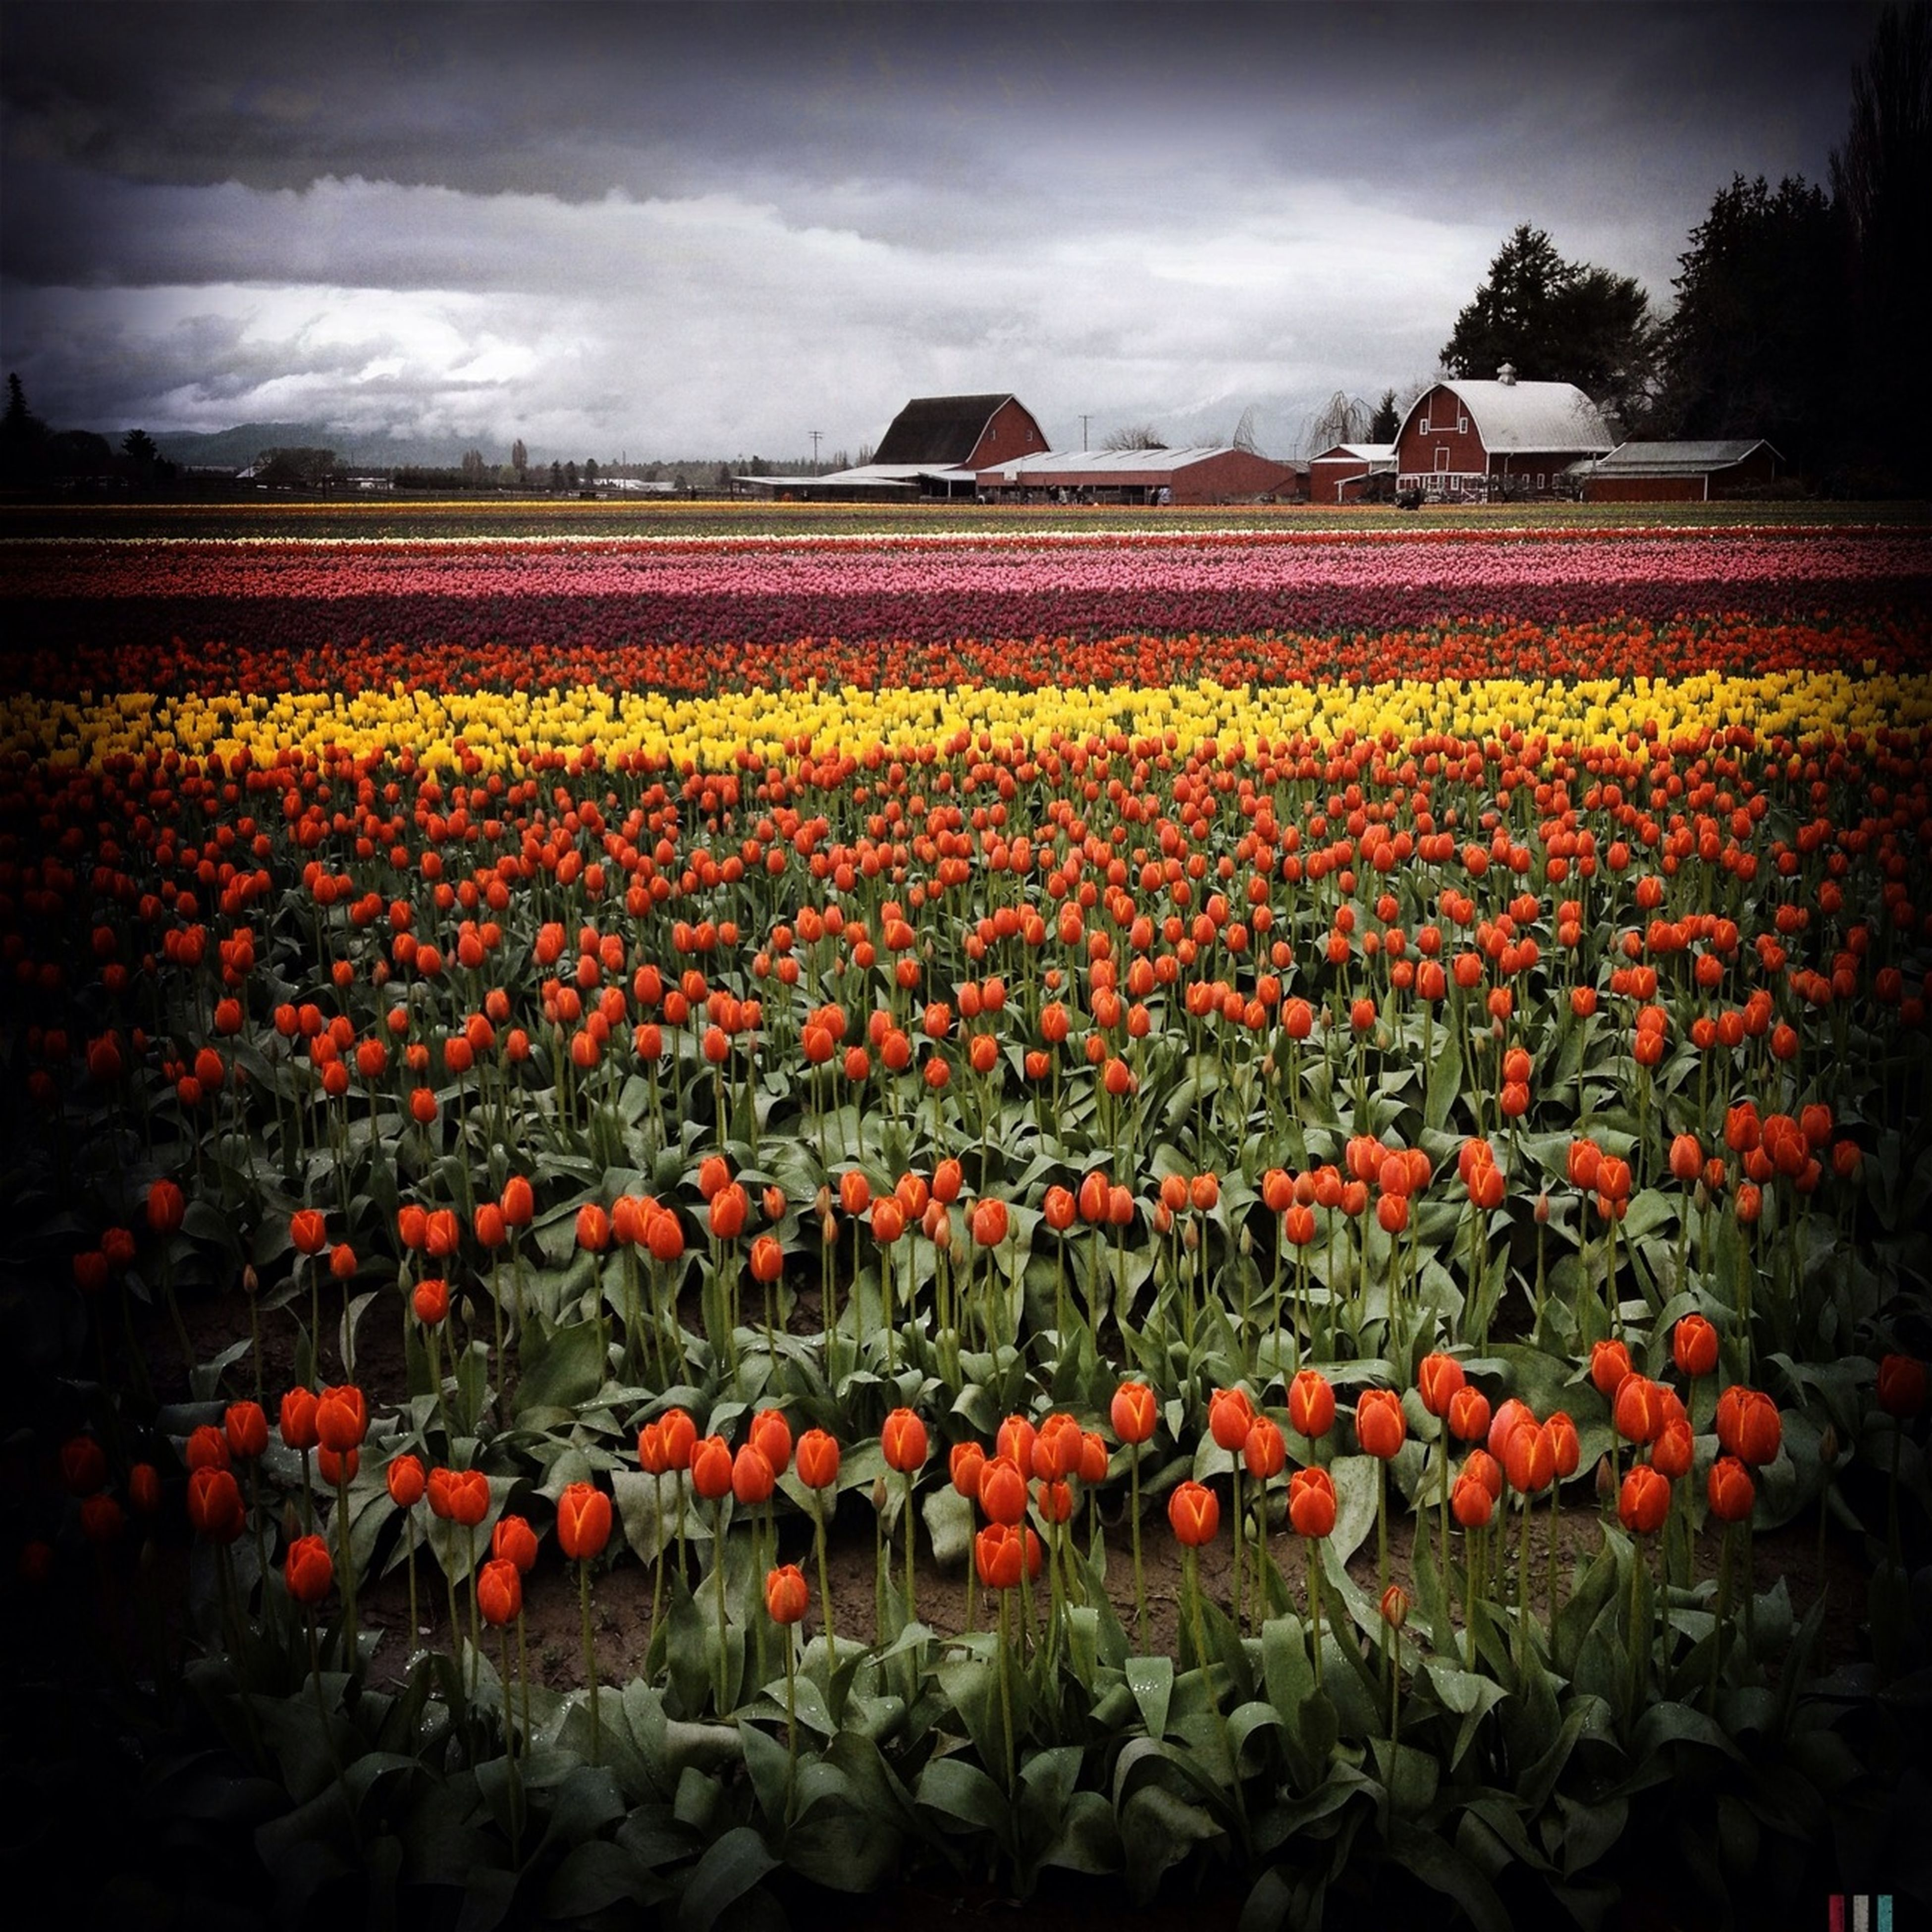 flower, field, agriculture, rural scene, freshness, abundance, sky, beauty in nature, growth, tulip, cloud - sky, nature, red, landscape, flowerbed, yellow, farm, fragility, blooming, tranquil scene